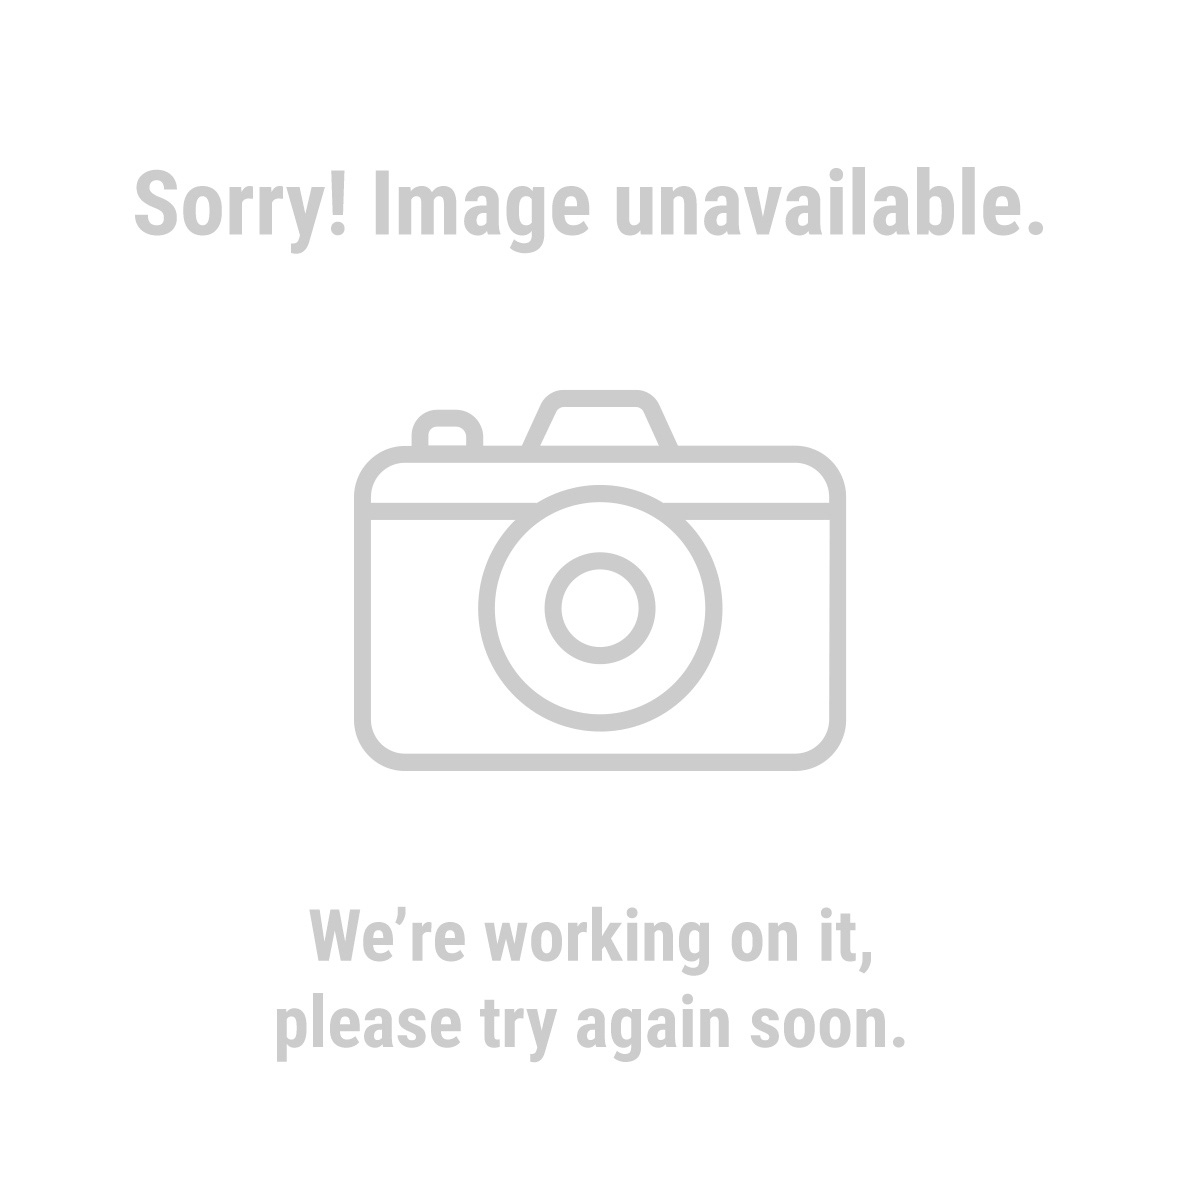 40 Piece Carbon Steel SAE Tap and Die Set